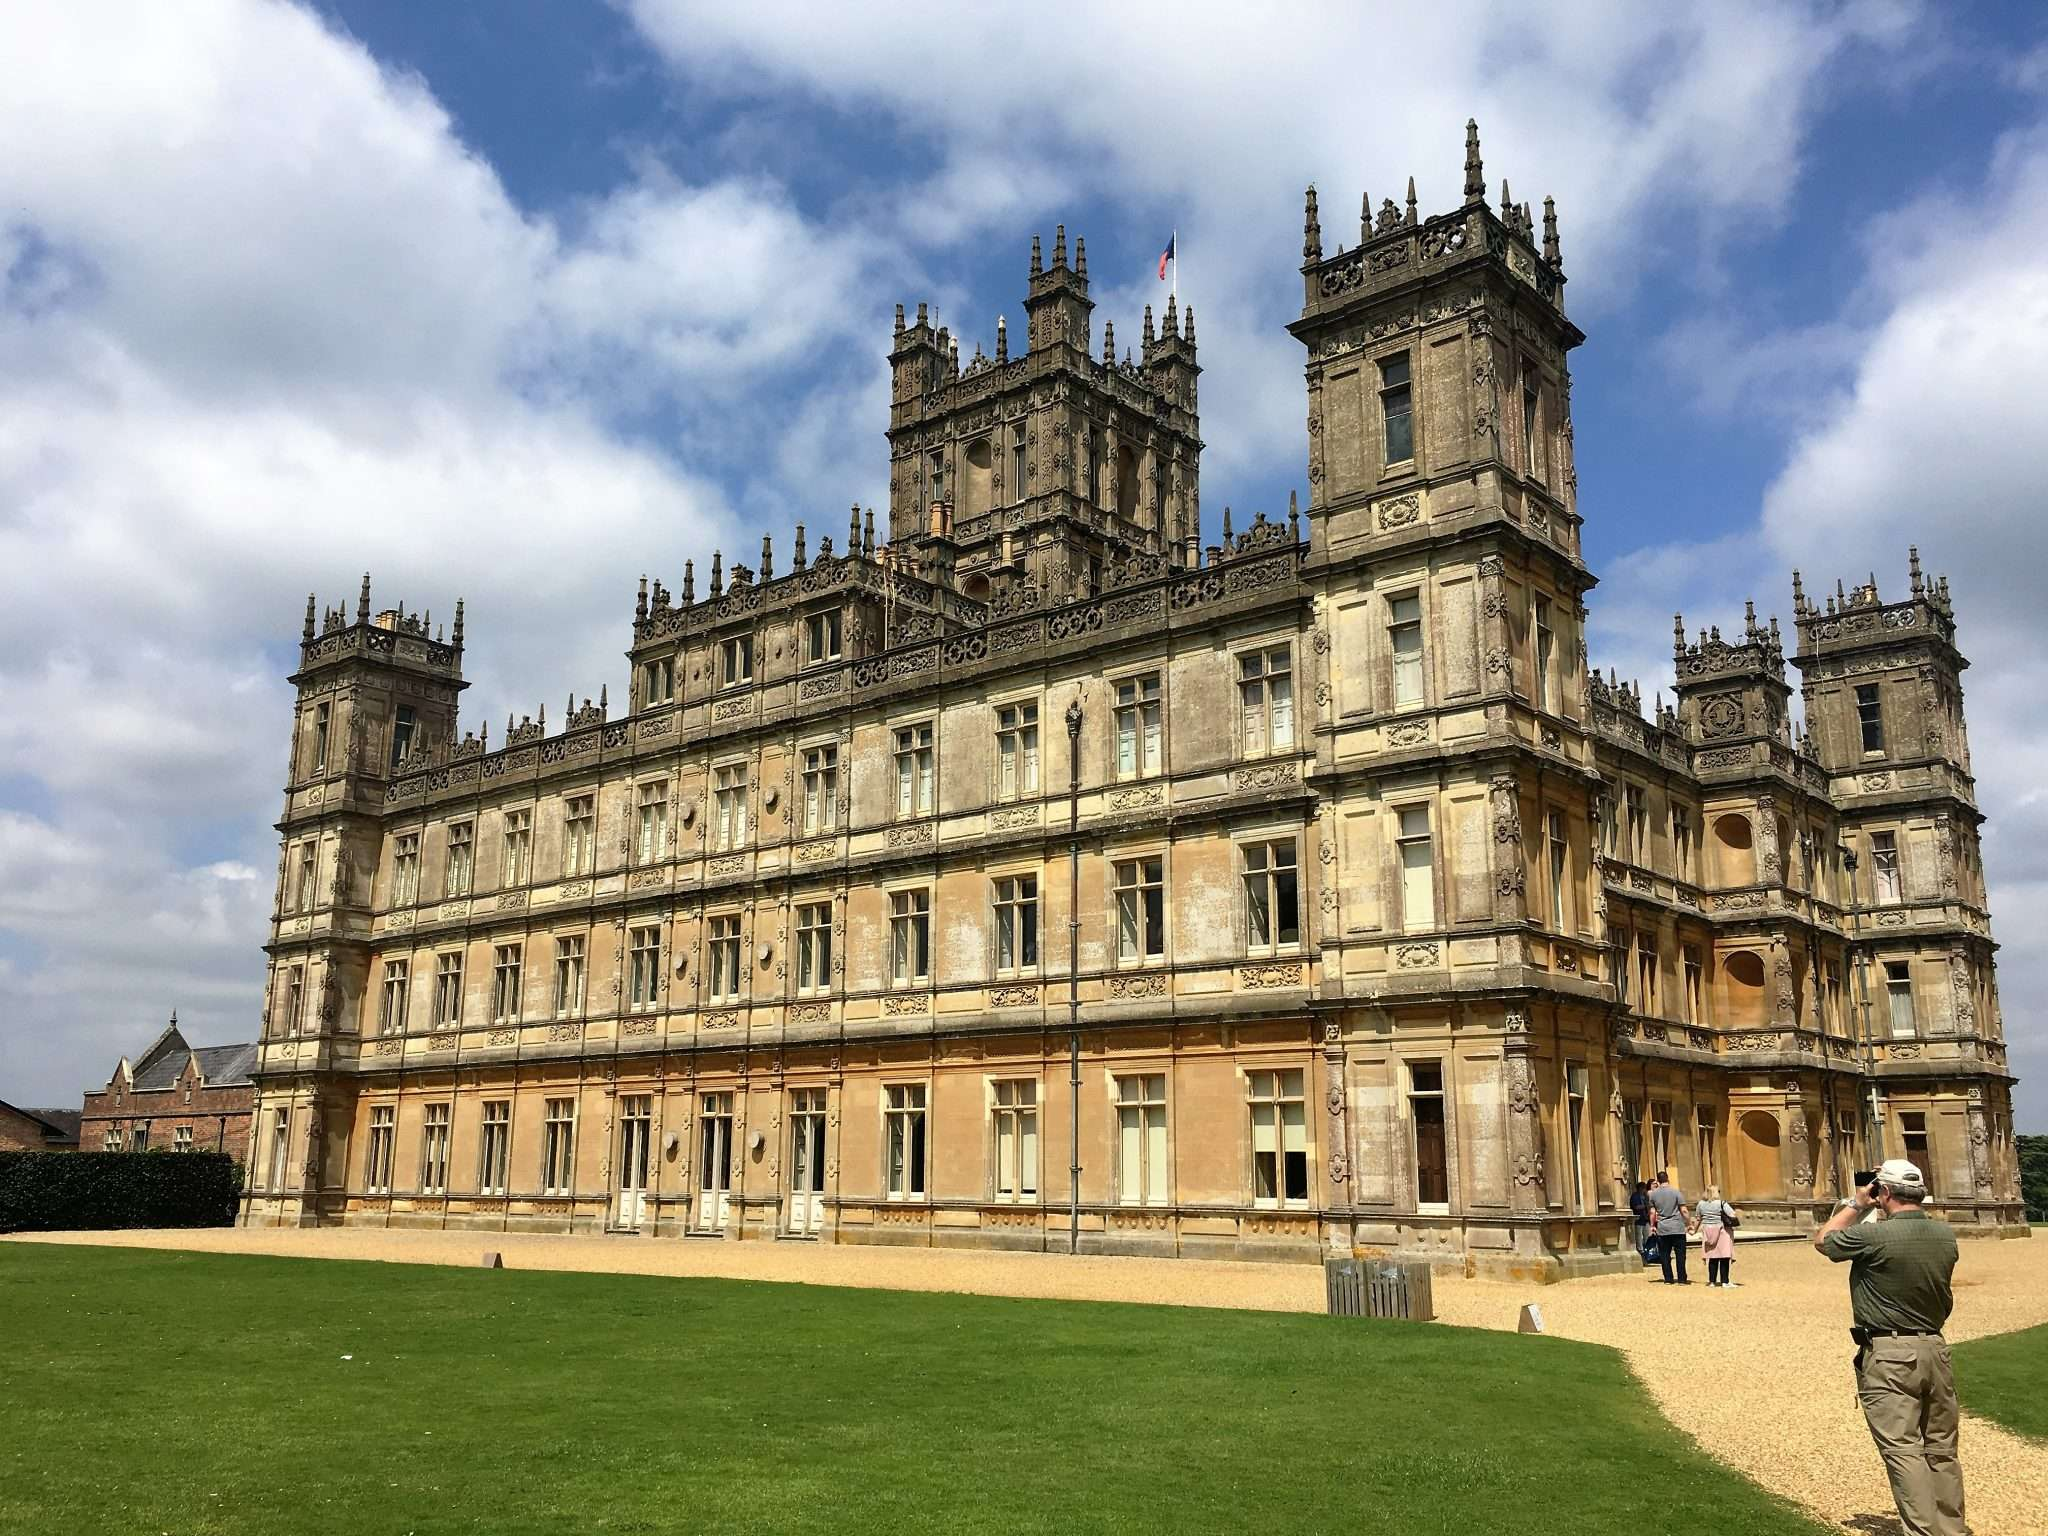 A view of Highclere Castle from the side